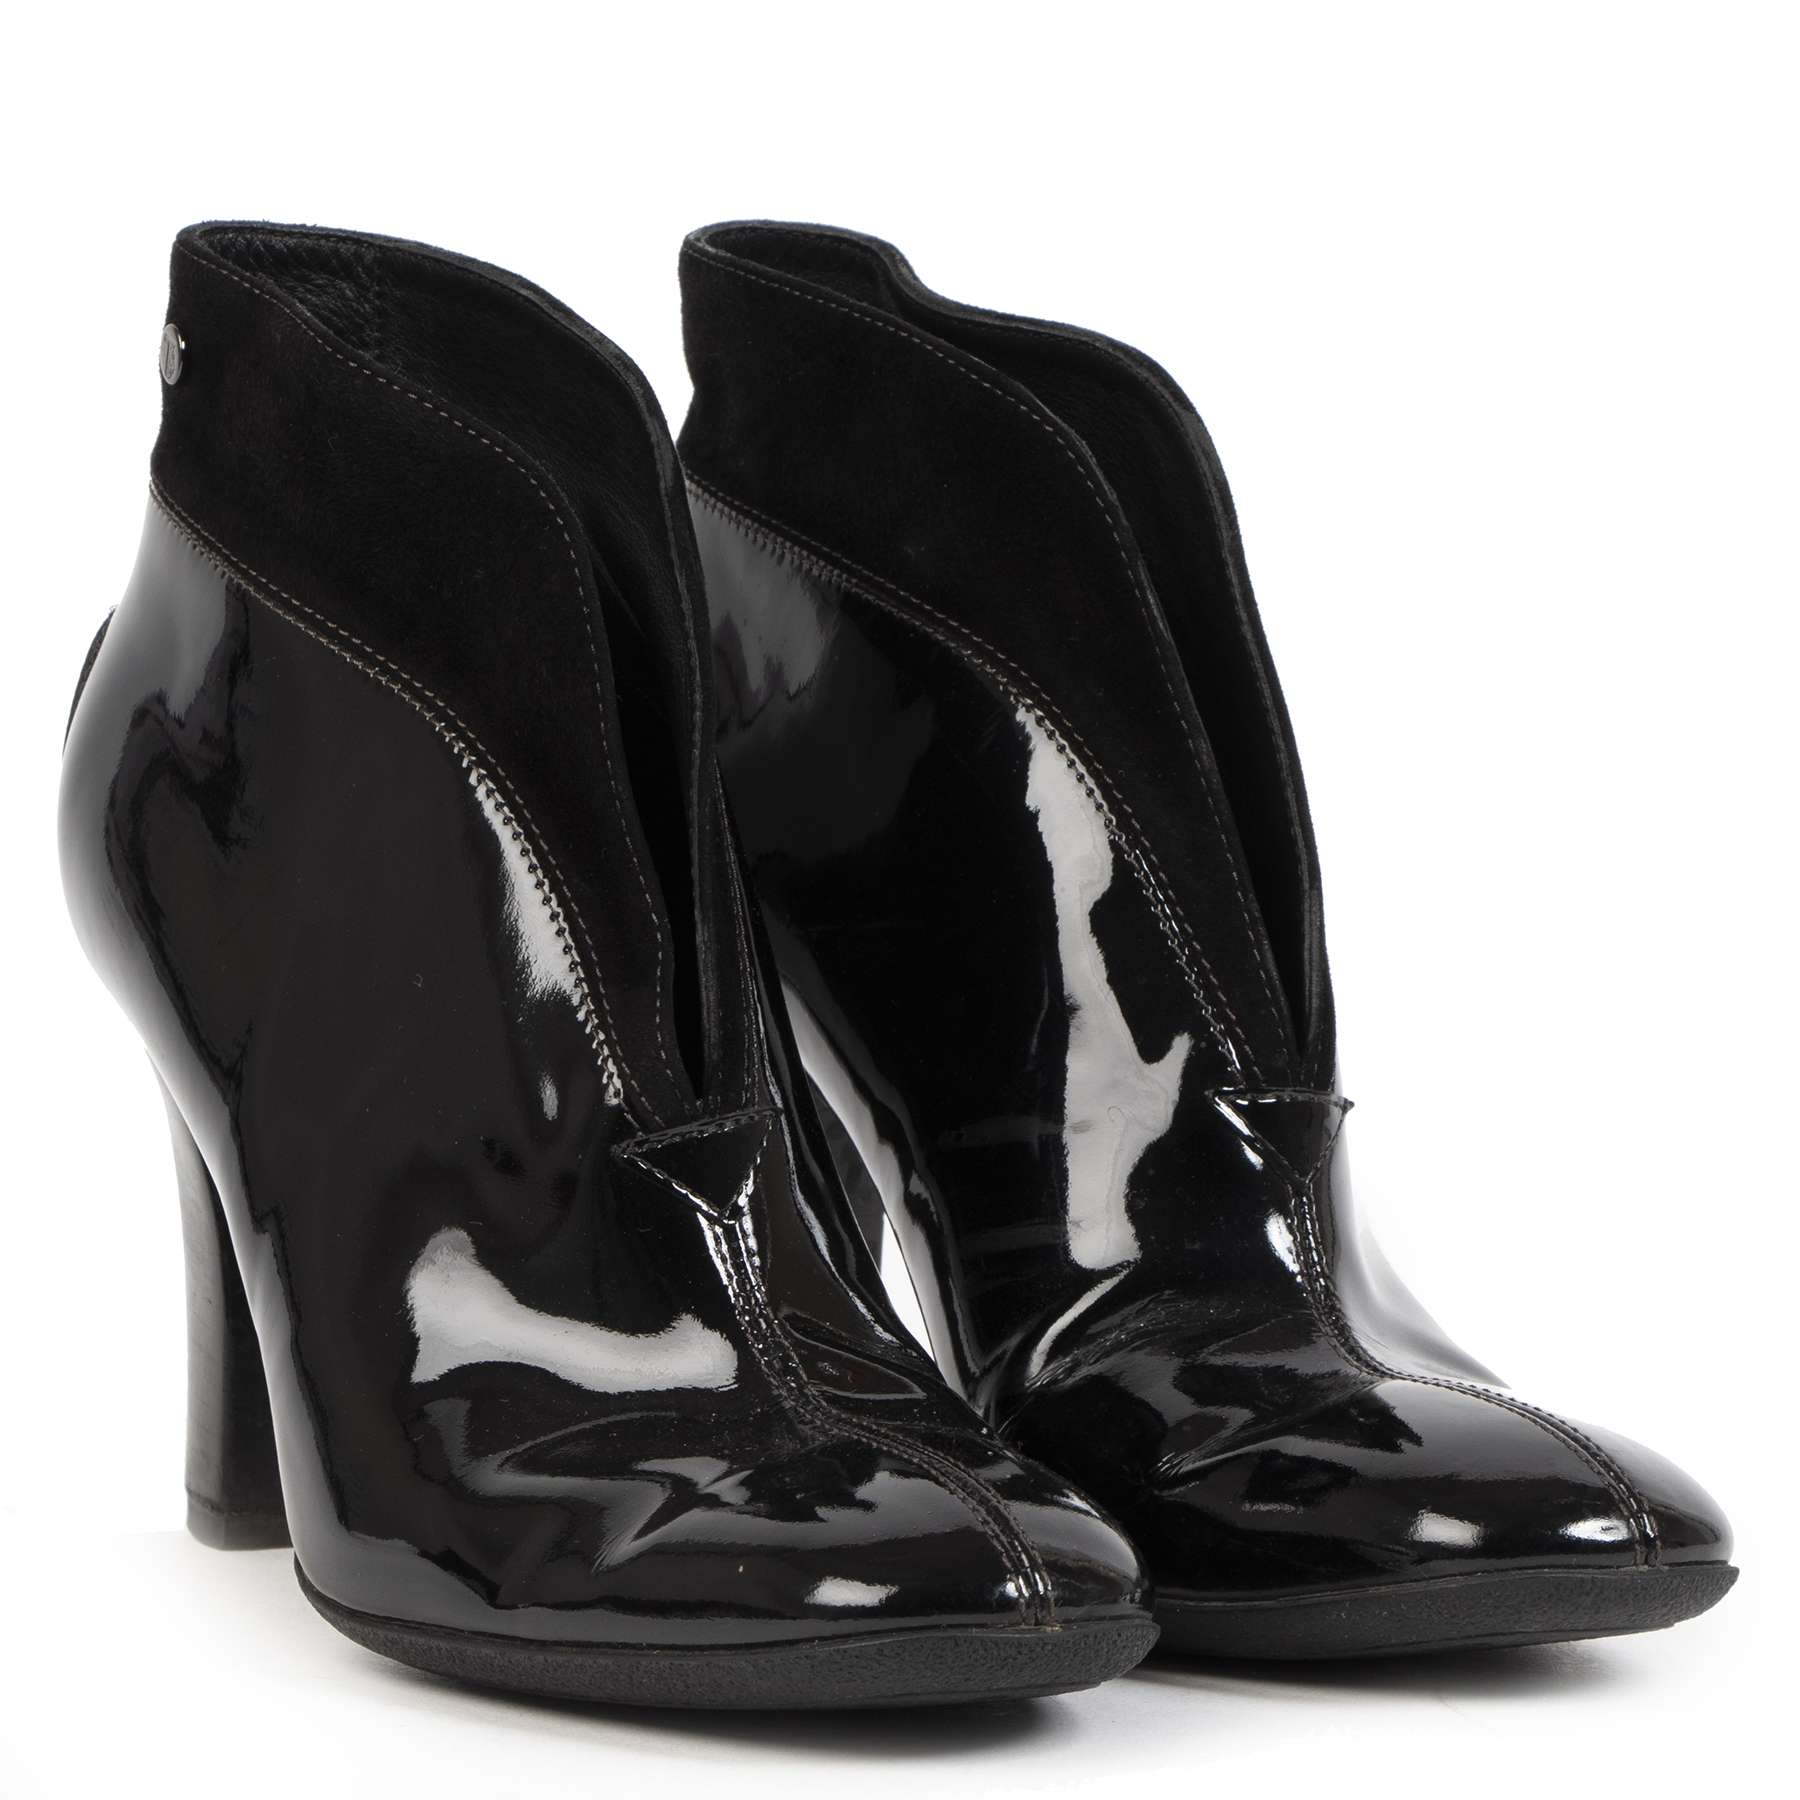 Authentique seconde-main vintage Tod's Black Patent Leather Ankle Boot - Size 38 achète en ligne webshop LabelLOV